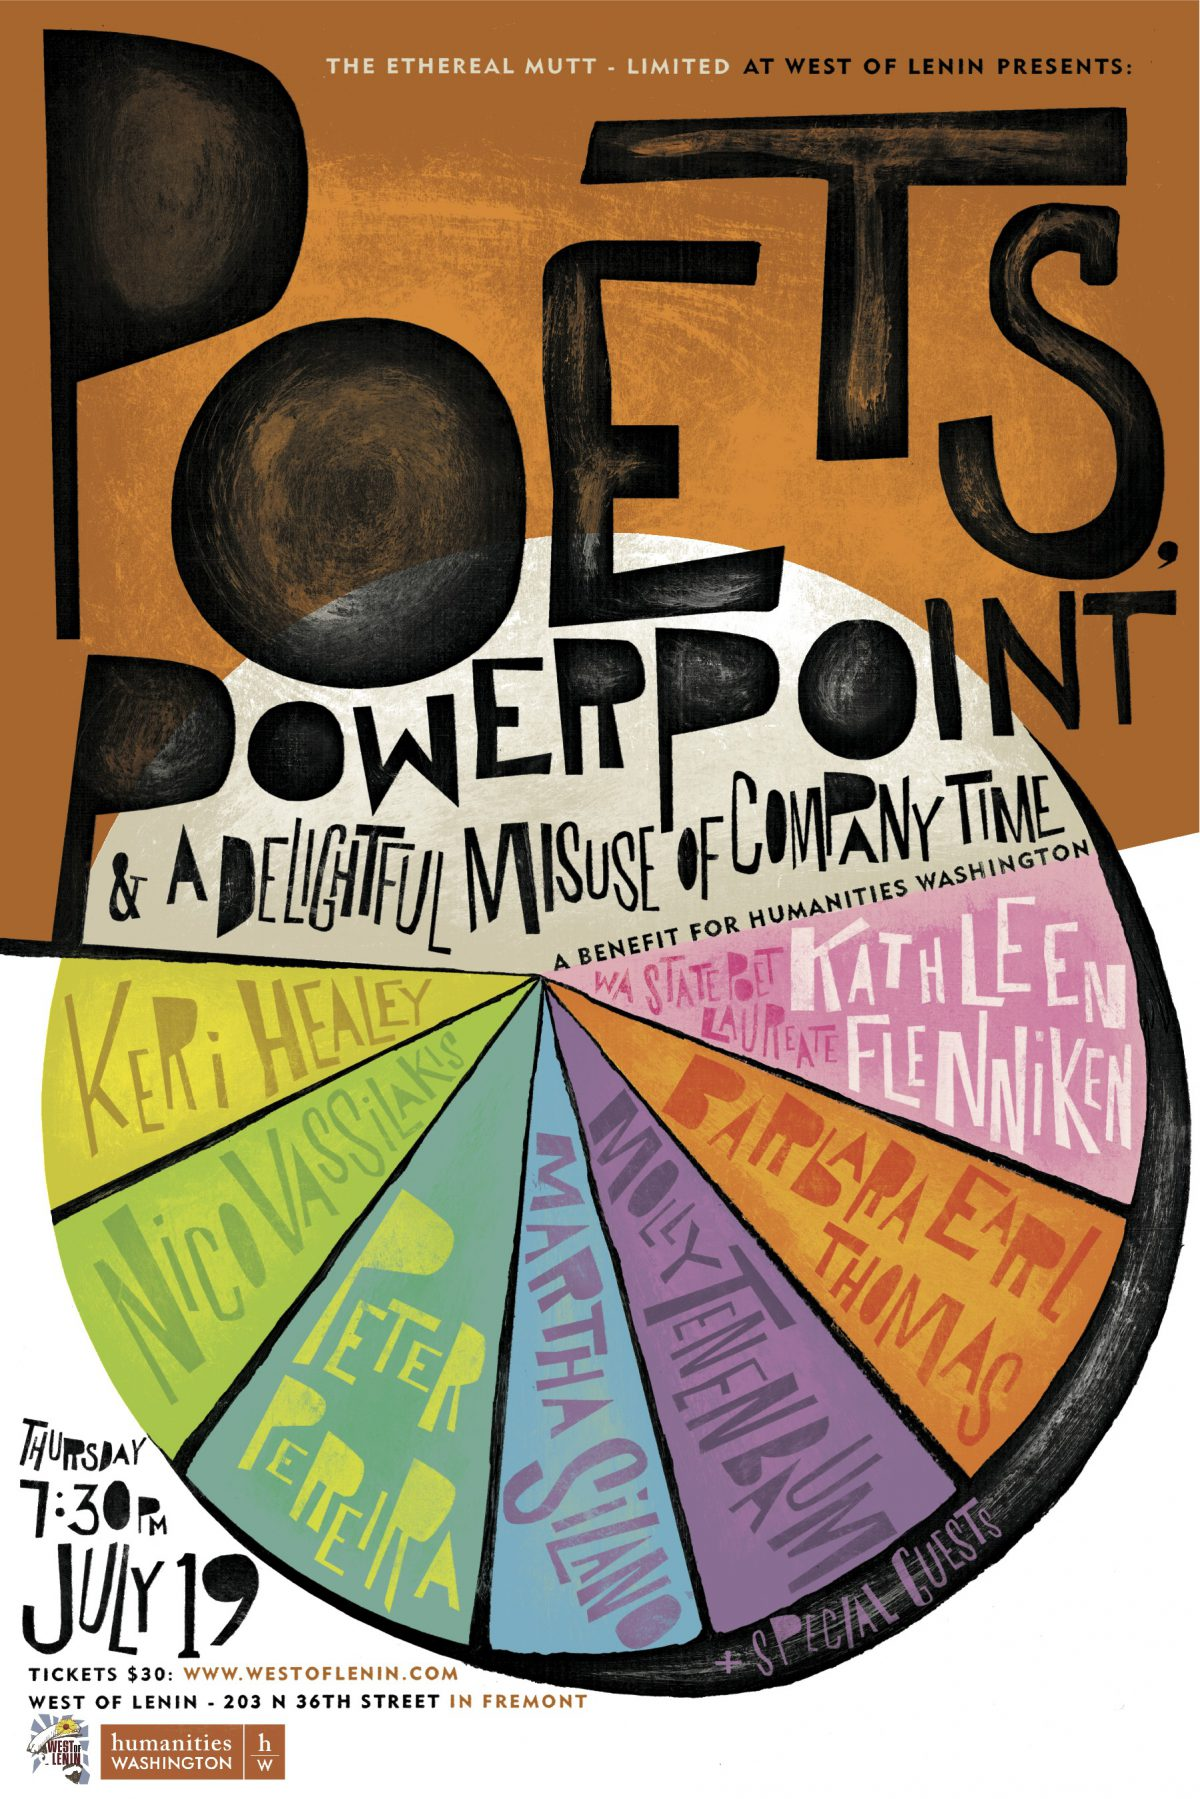 Poets, PowerPoint & A Delightful Misuse of Company Time poster